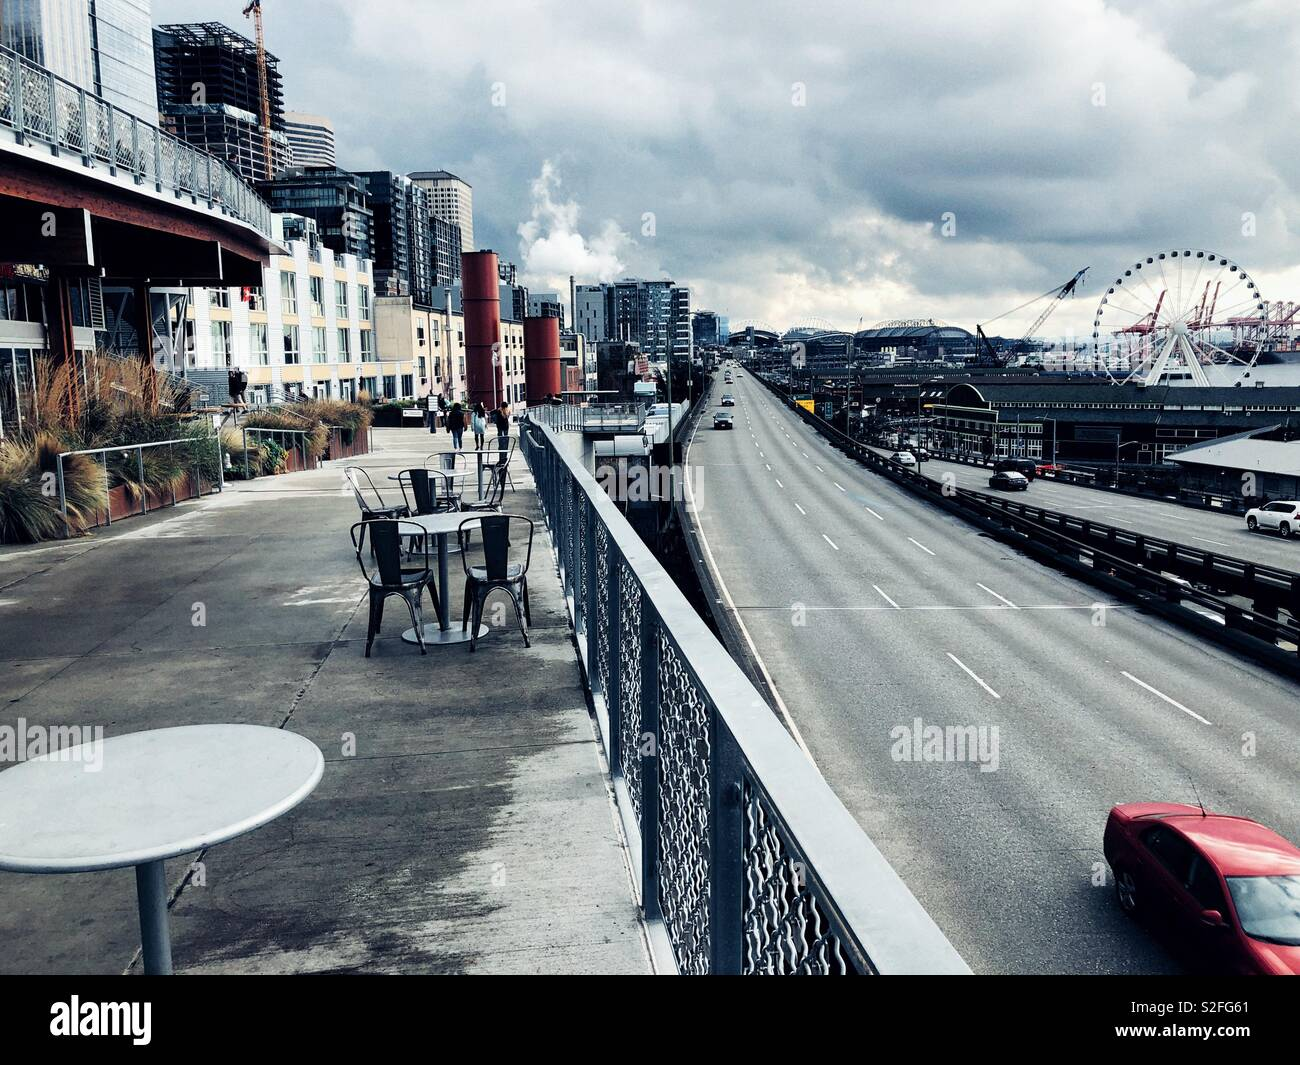 Infamous Seattle viaduct scheduled to be demolished in January 2019 - Stock Image